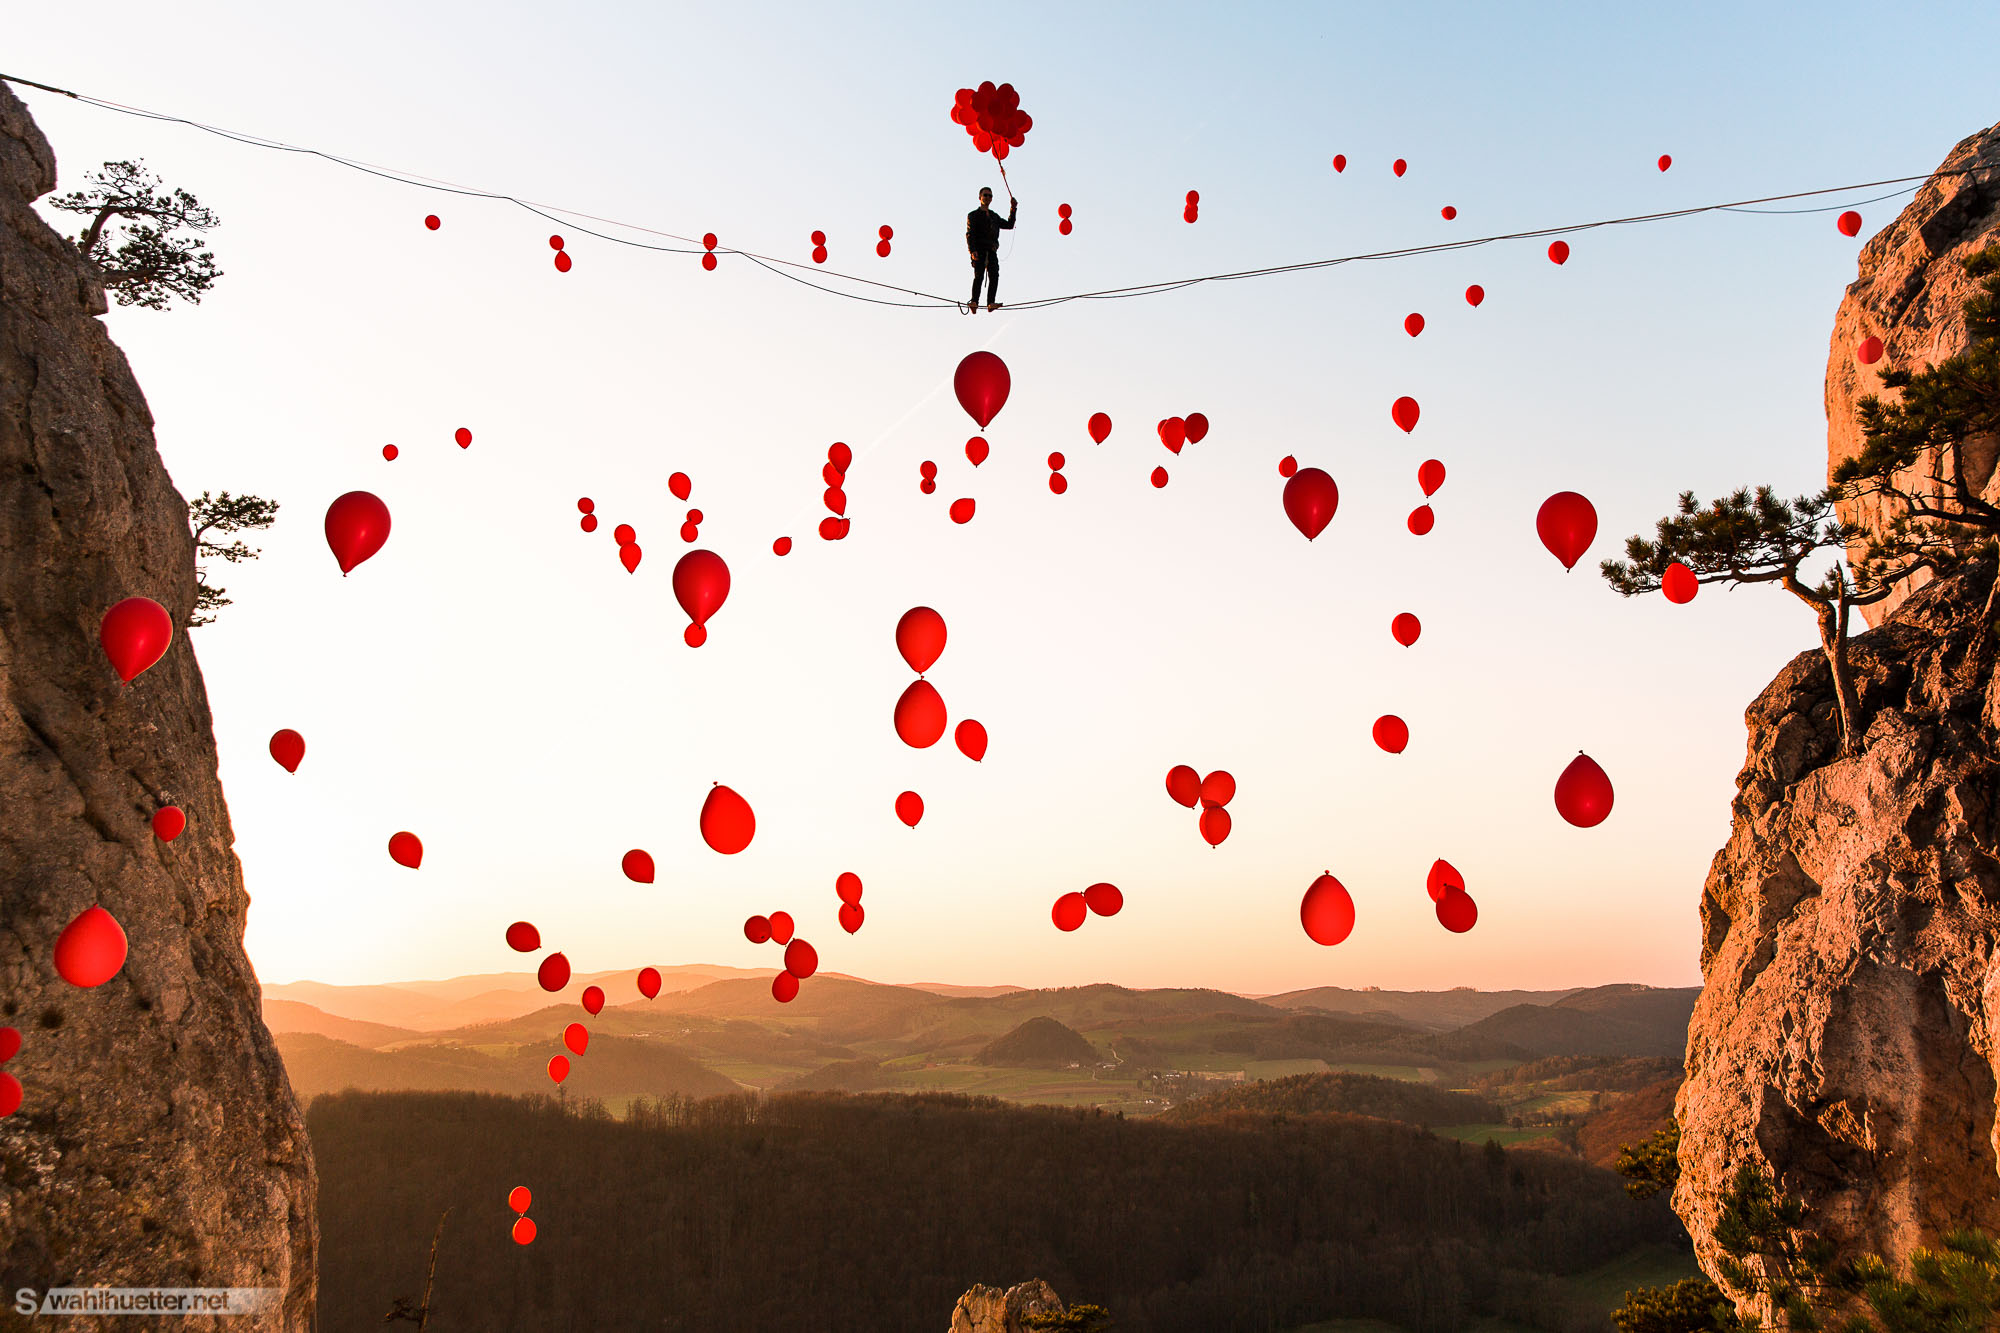 The Story Of 99 Red Balloons Floating Towards Horizon Performed By Band Nena Was Originally Inspired Raising Over Berlin Wall